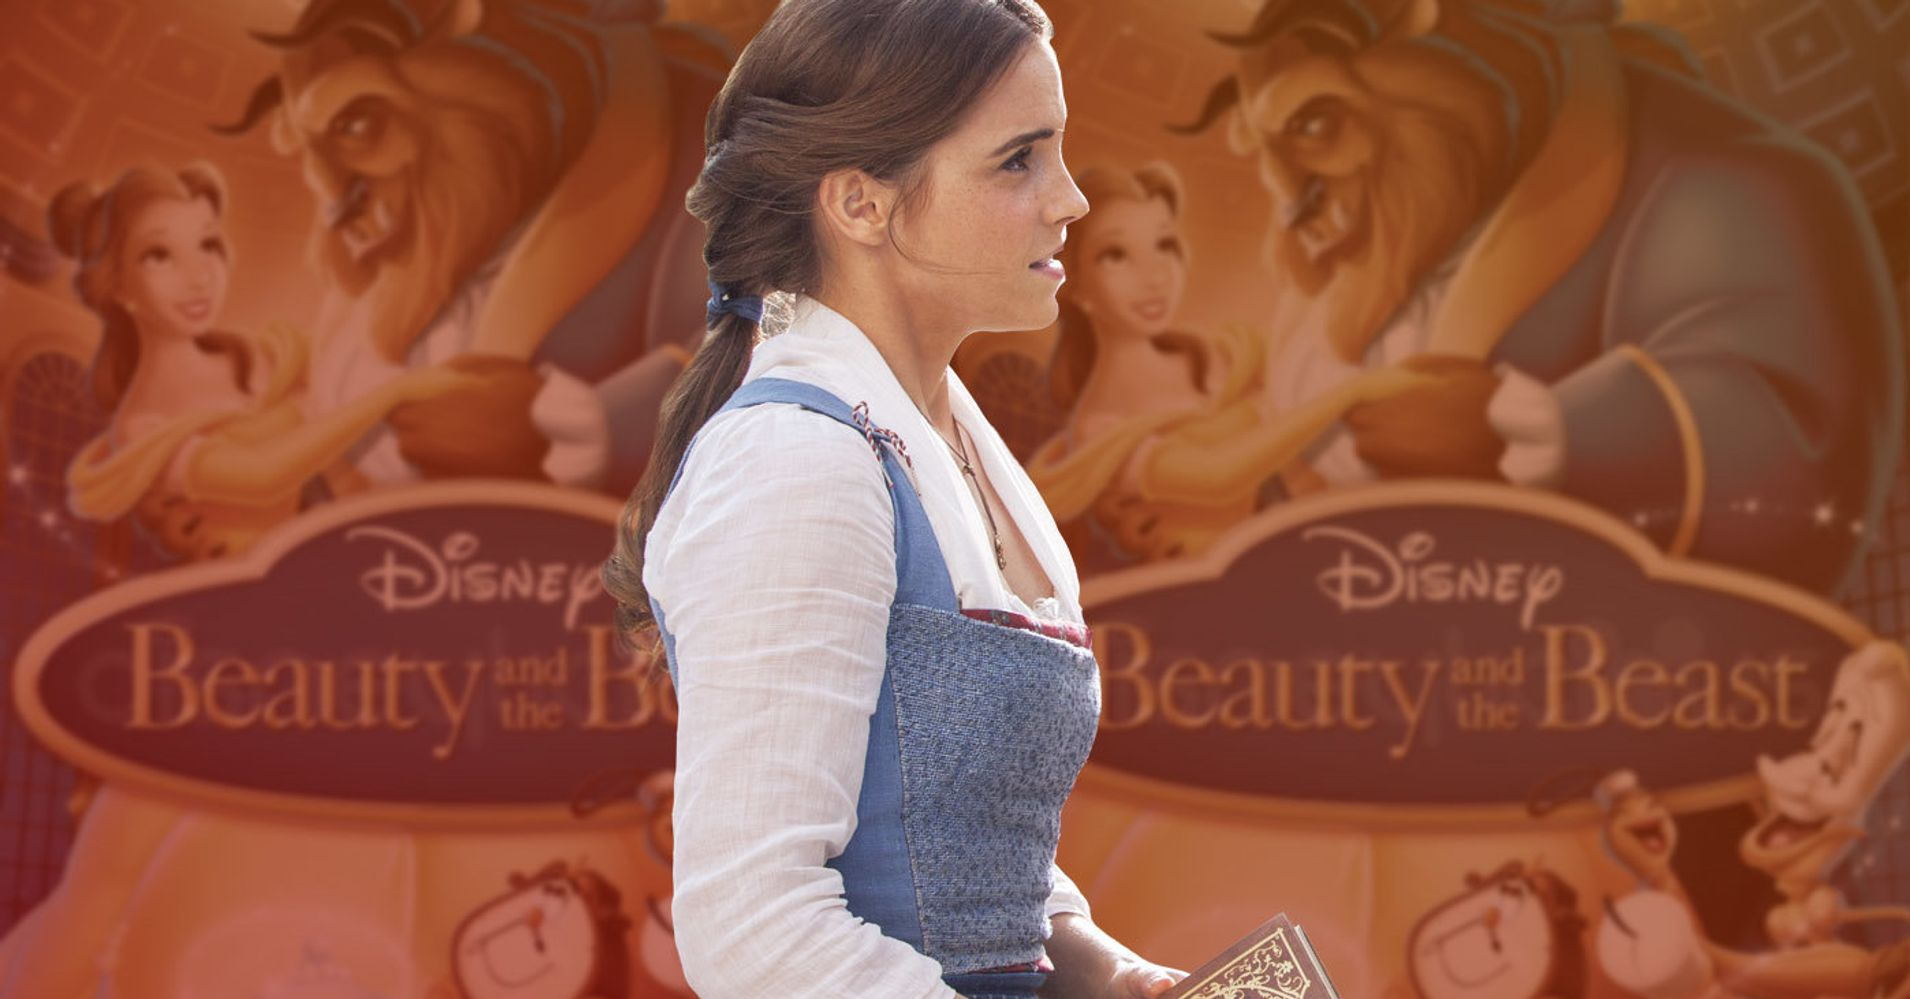 beauty and the beast 1991 full movie download mp4